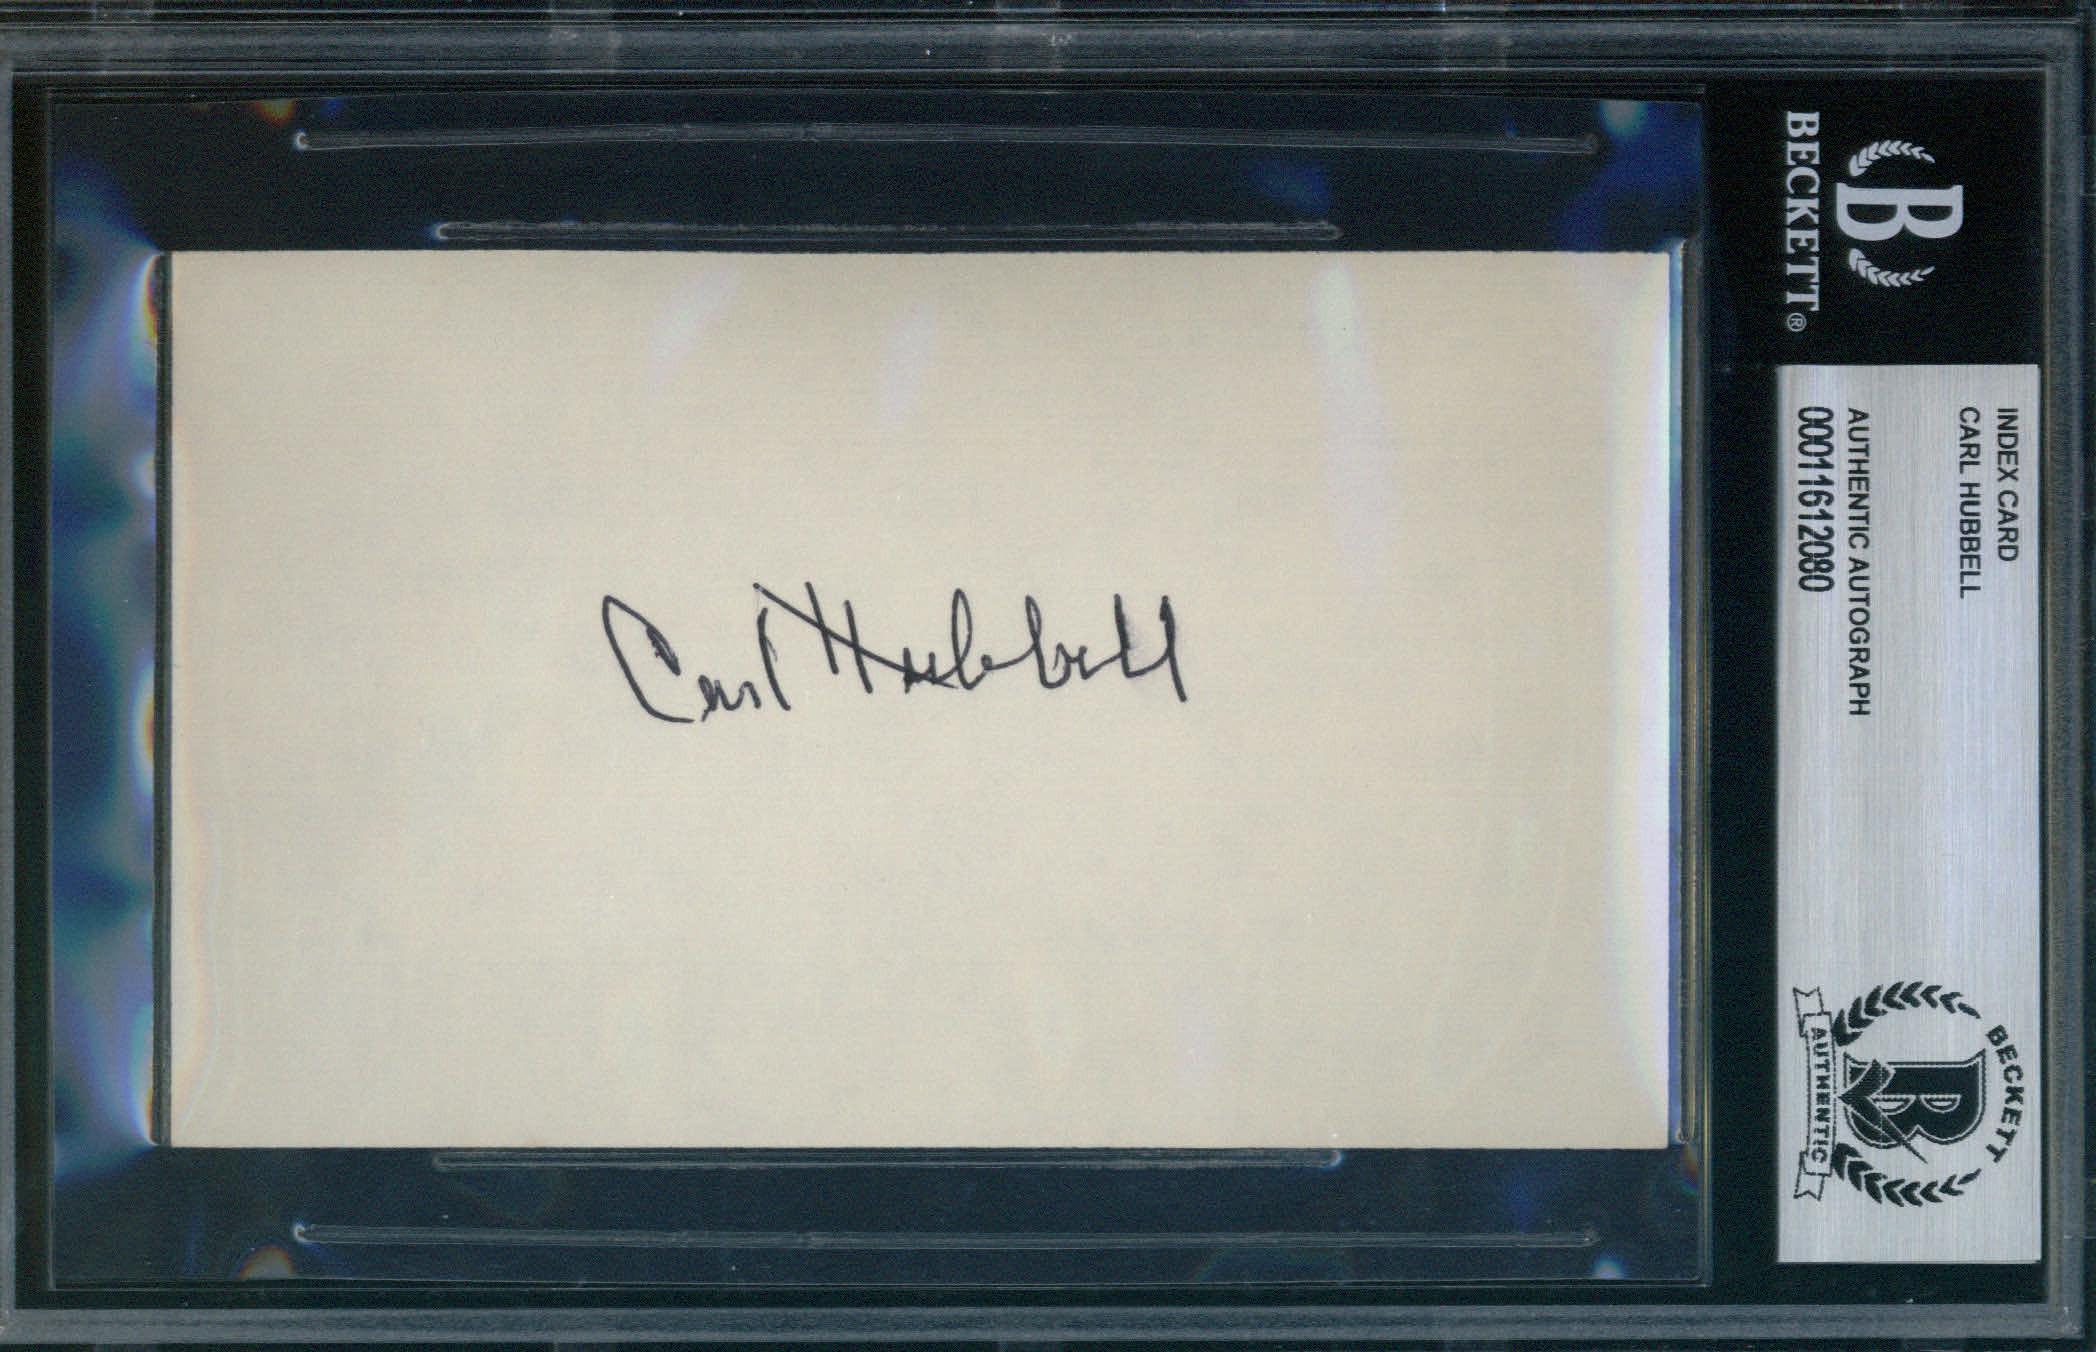 Carl Hubbell Autographed Index Card BAS Authenticated